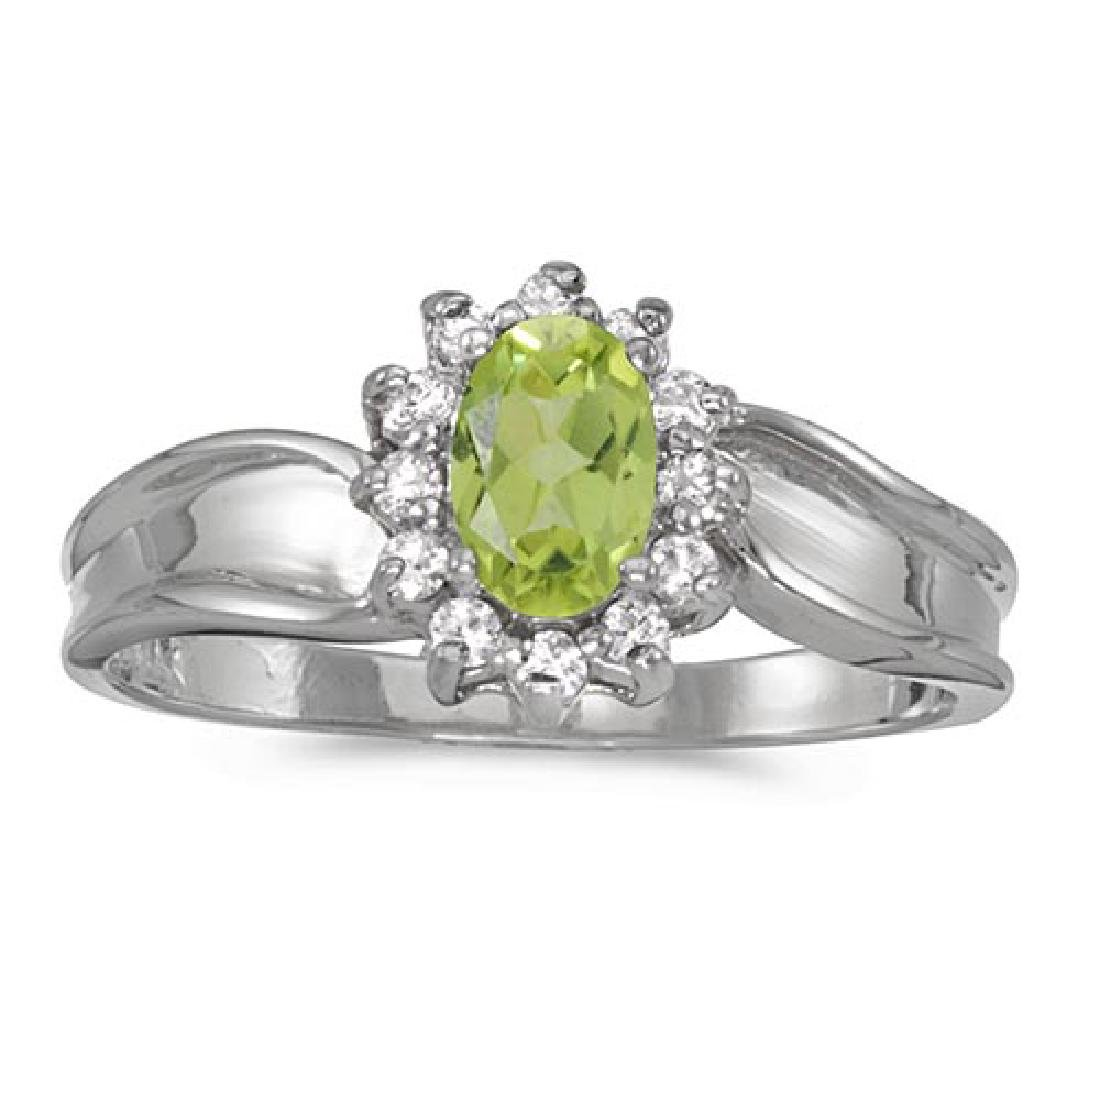 Certified 14k White Gold Oval Peridot And Diamond Ring